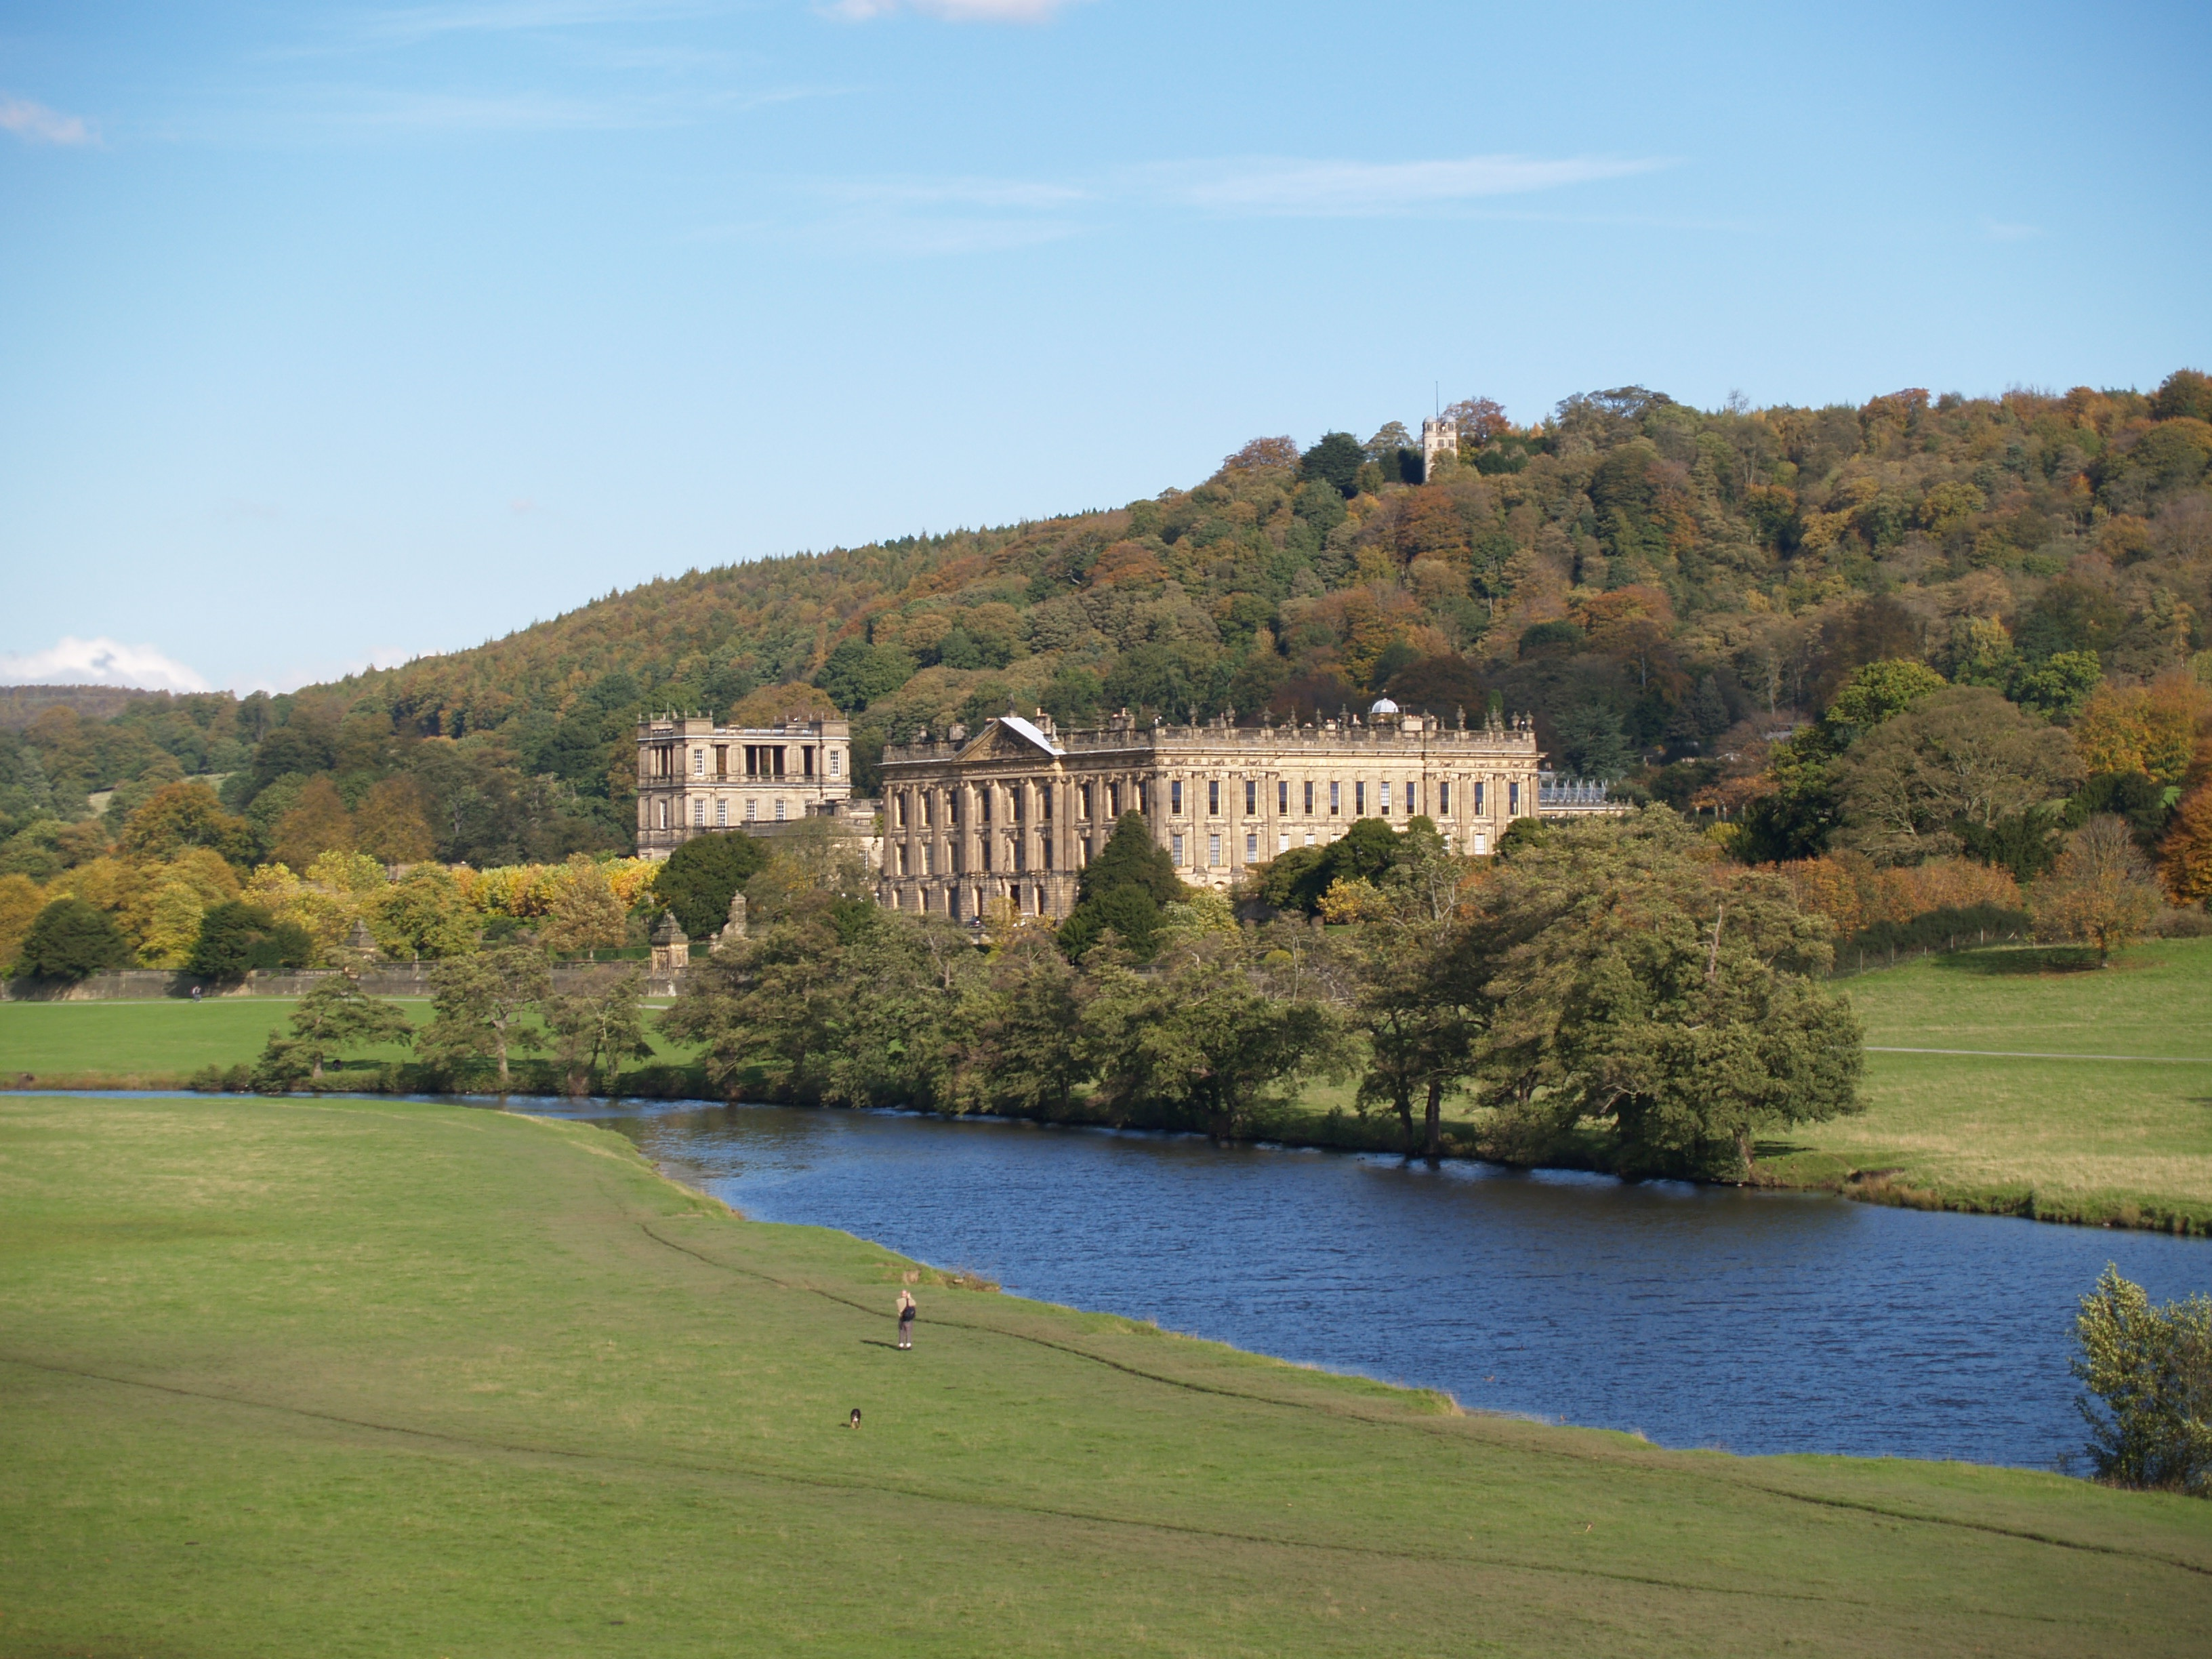 http://de.academic.ru/pictures/dewiki/67/Chatsworth_showing_hunting_tower.jpg